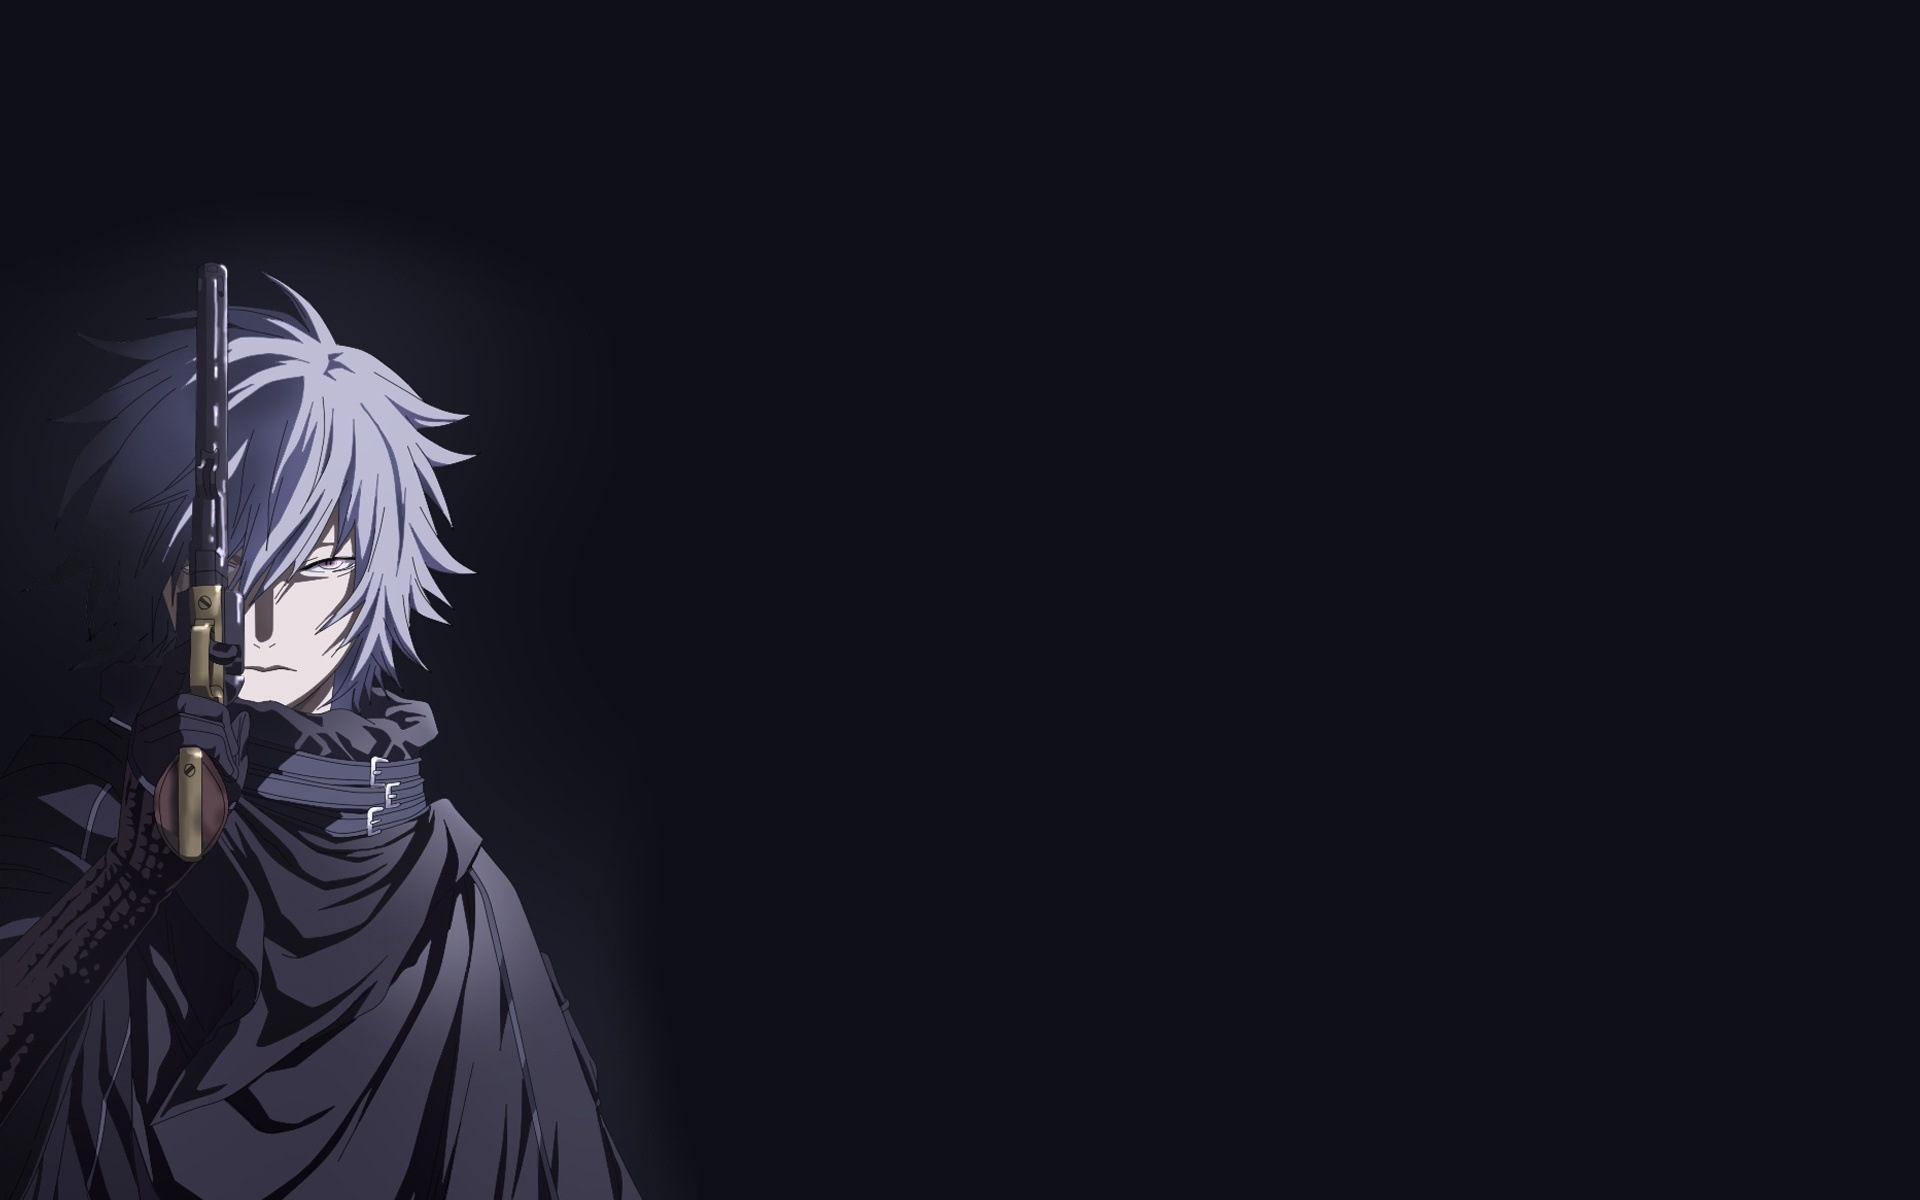 Tegami Bachi Dark Anime Hd Wallpaper 6105 Wallpaper Wallpaper hd 1920x1200